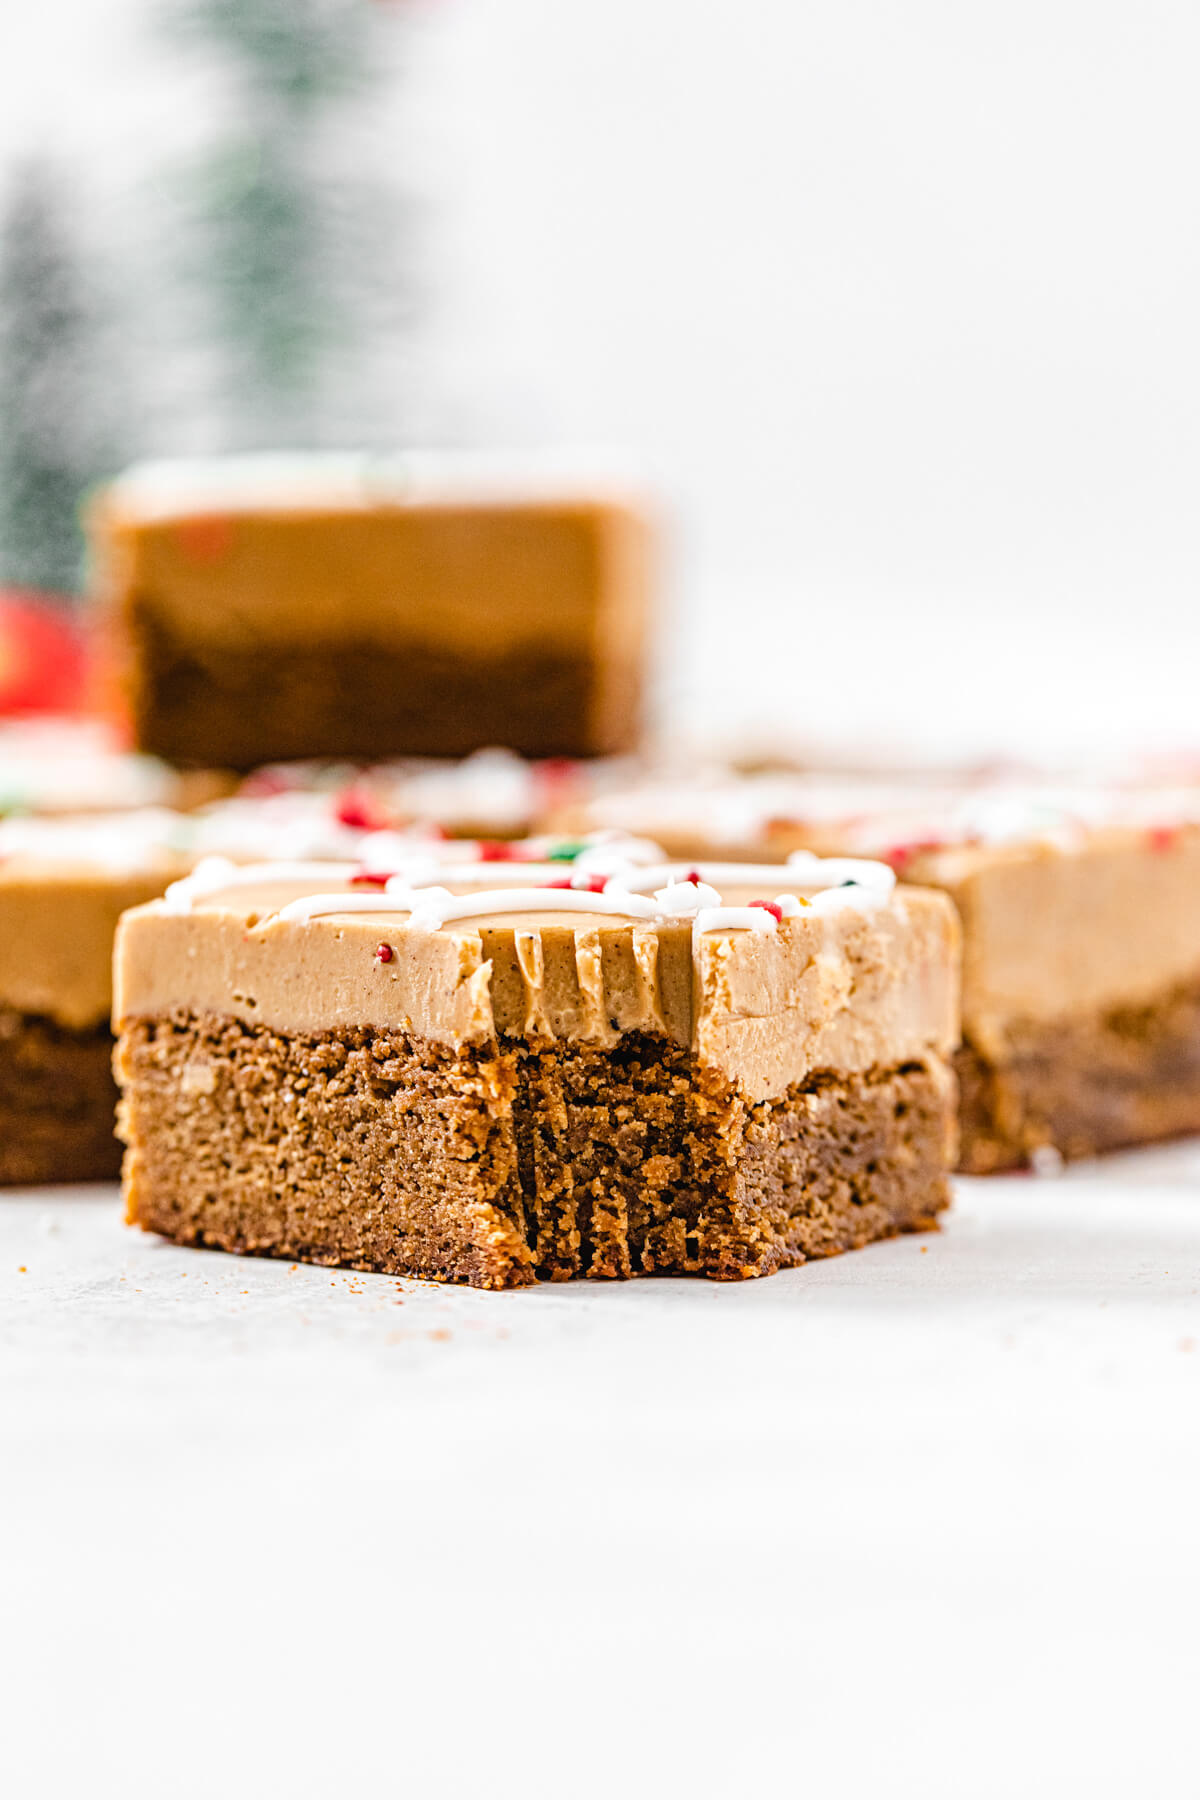 fudge topped blondie with a bite taken out of it